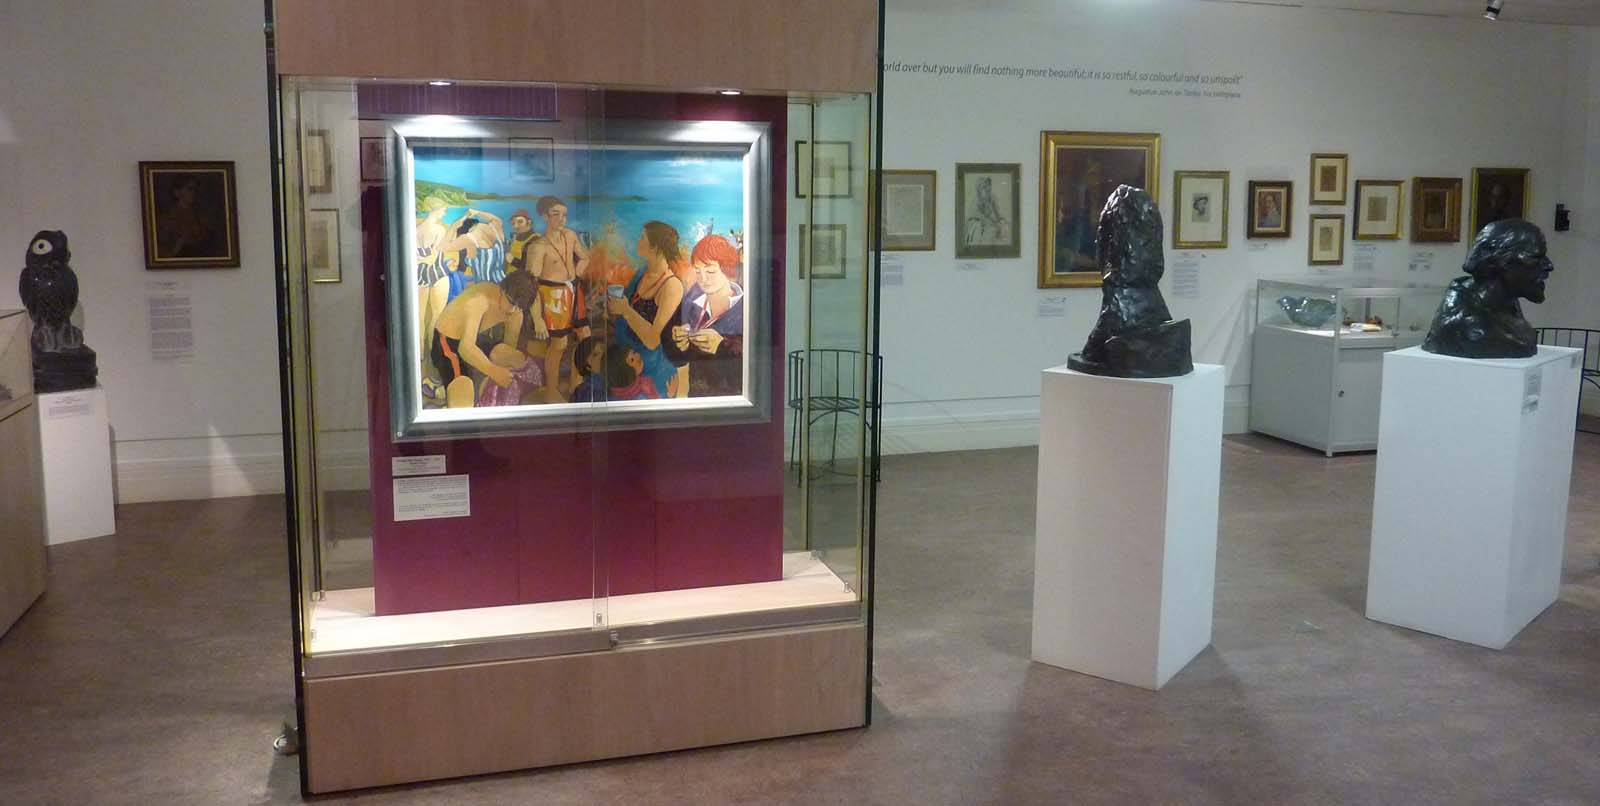 photo of a gallery with artworks